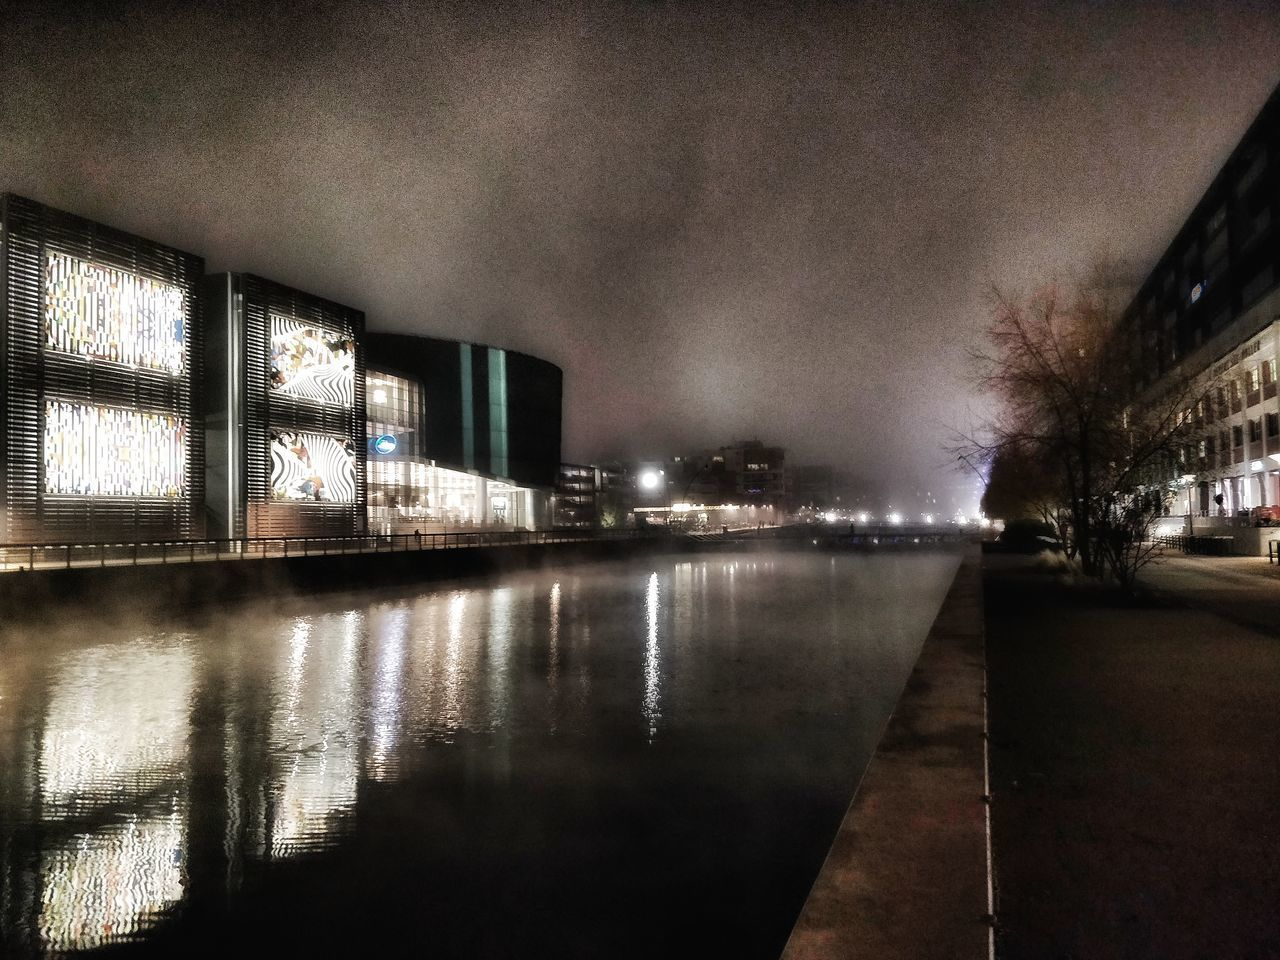 architecture, building exterior, built structure, illuminated, night, city, reflection, water, no people, nature, sky, building, tree, outdoors, cloud - sky, street, plant, auto post production filter, canal